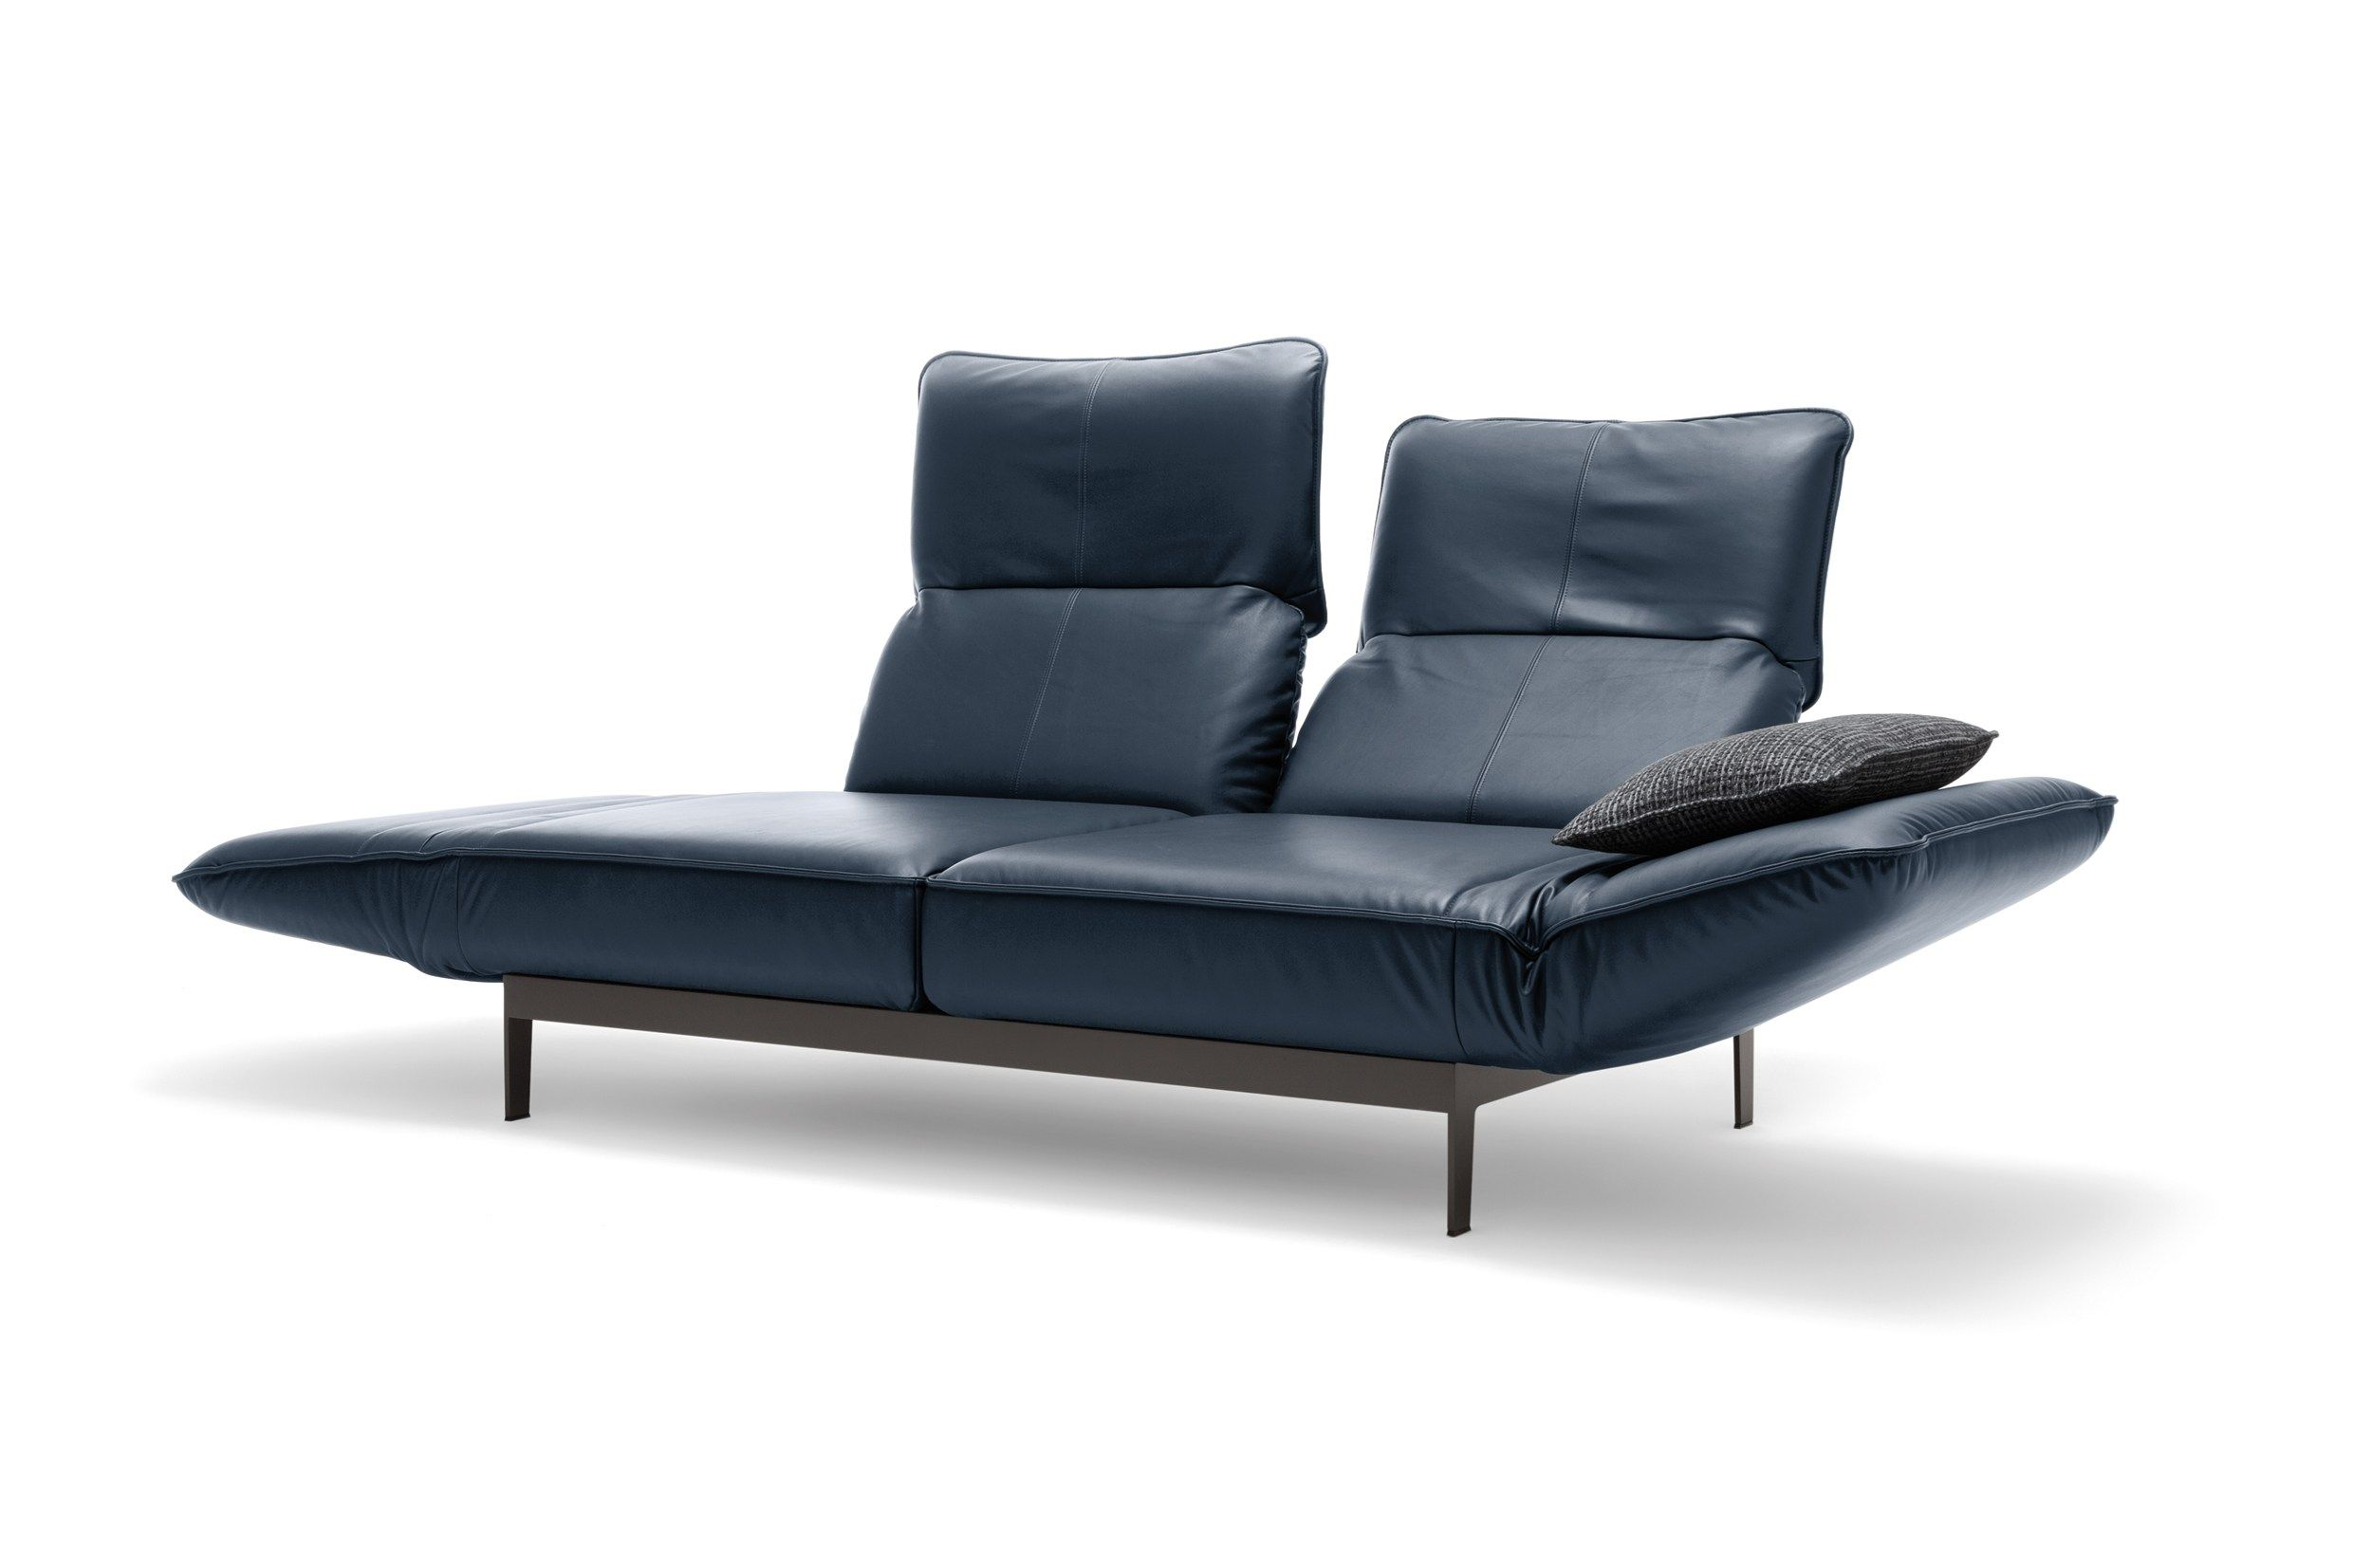 Rolf Benz CARA sofa Available at Studio Anise Rolf Benz U S